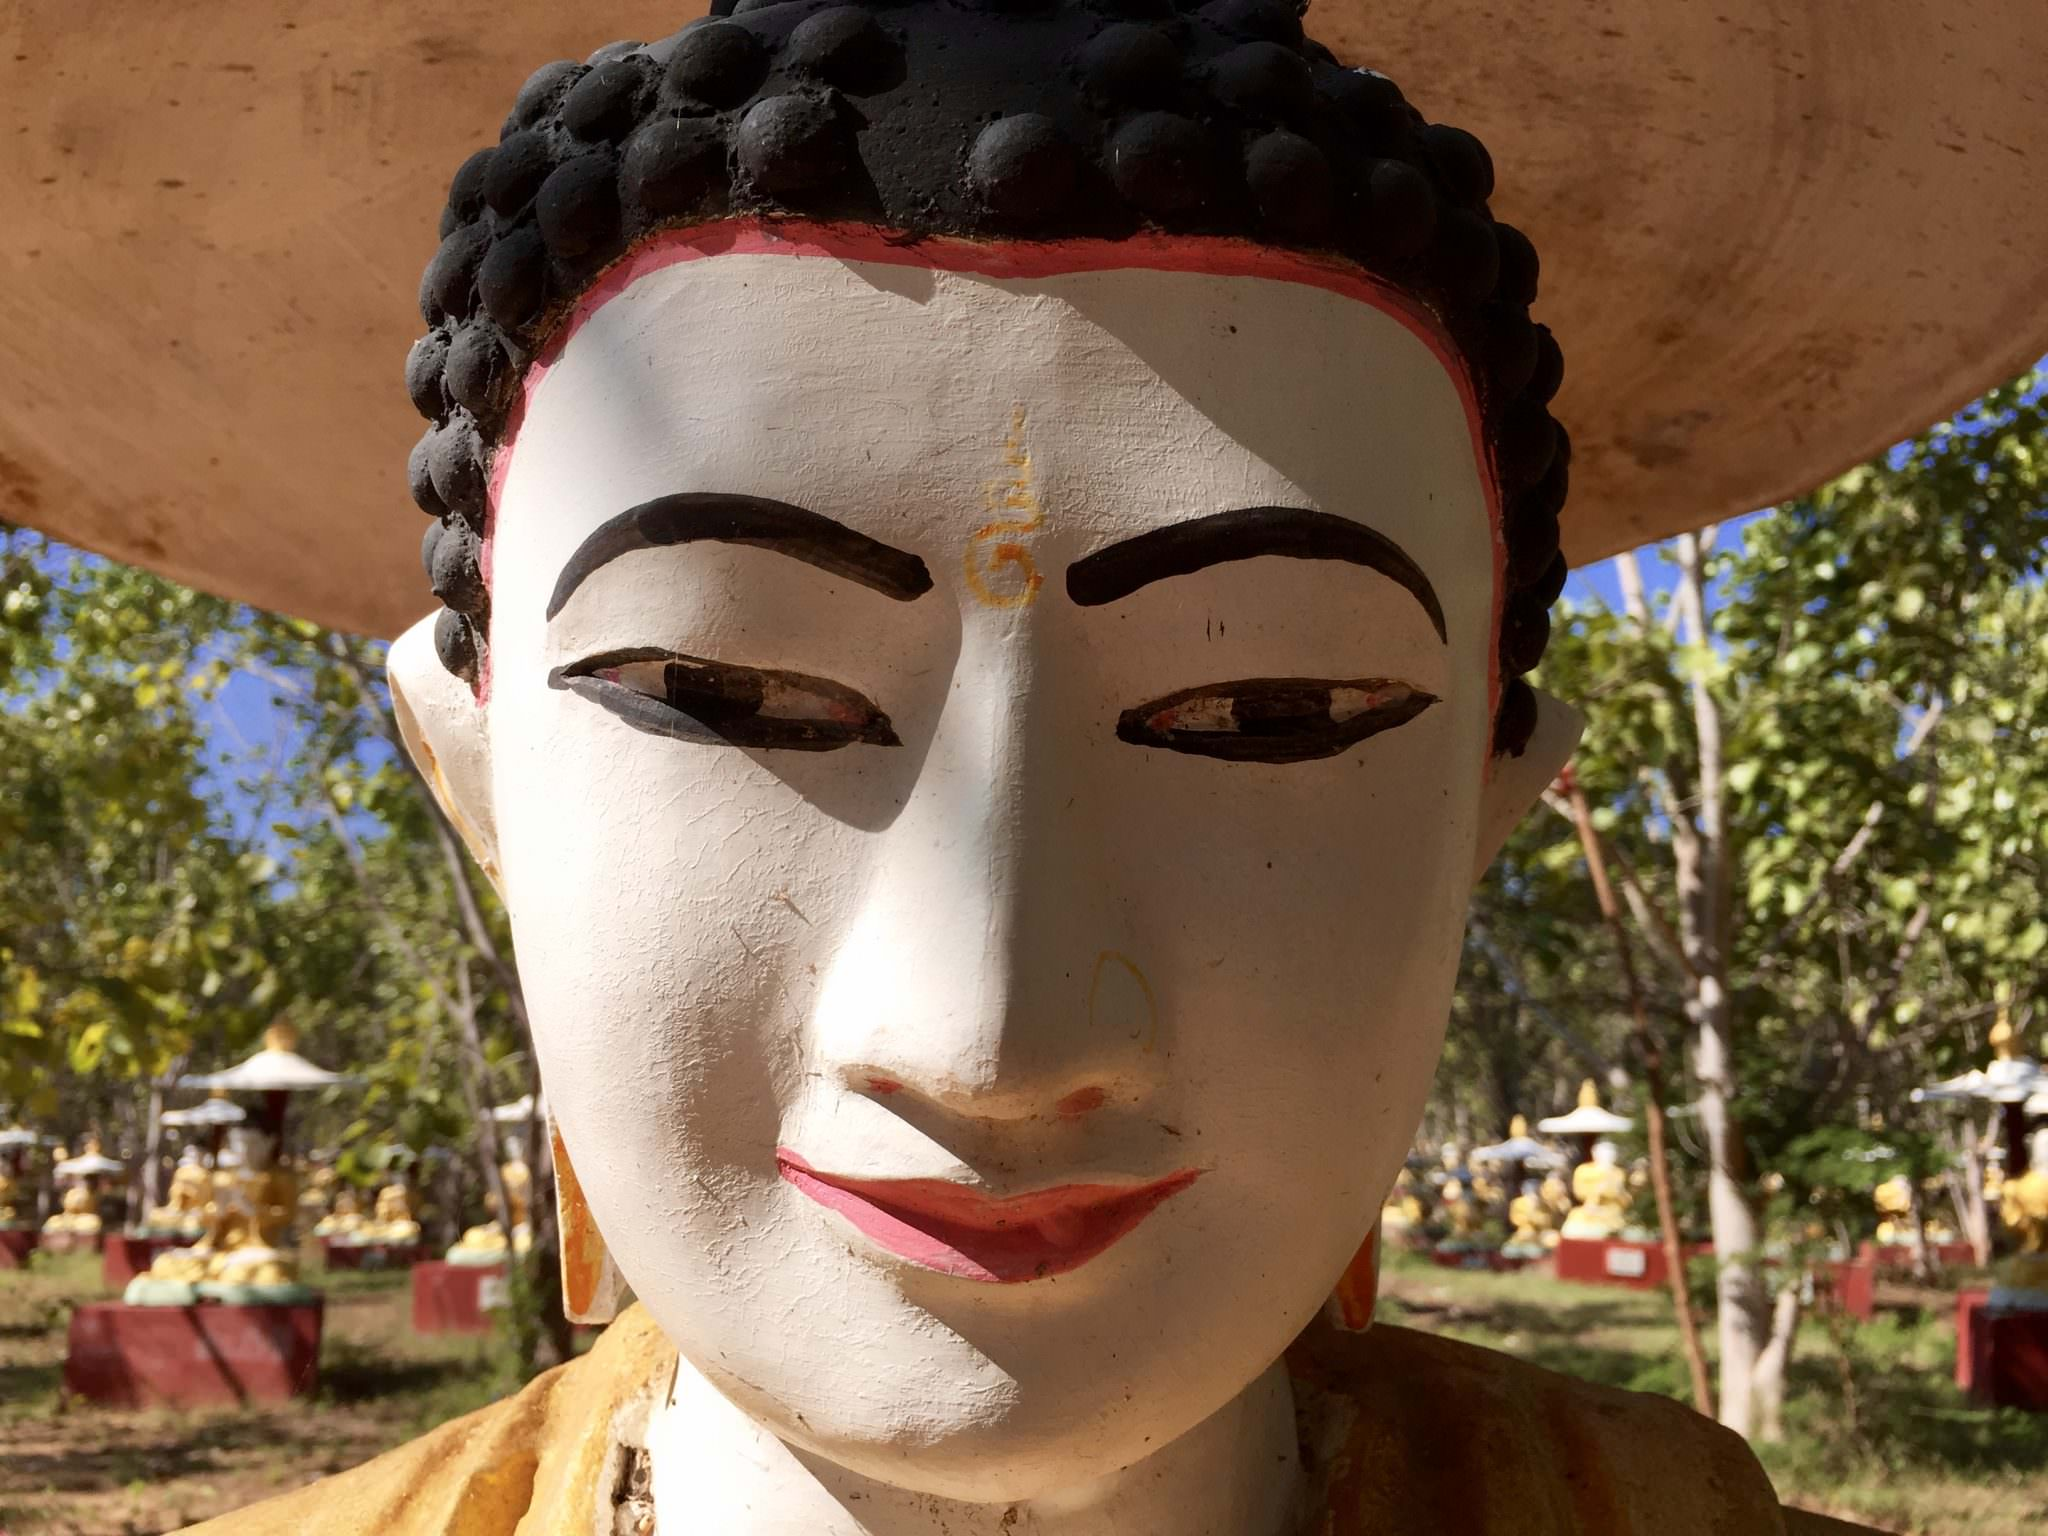 Detail of a statue in Monywa. © 2015 Gail Jessen